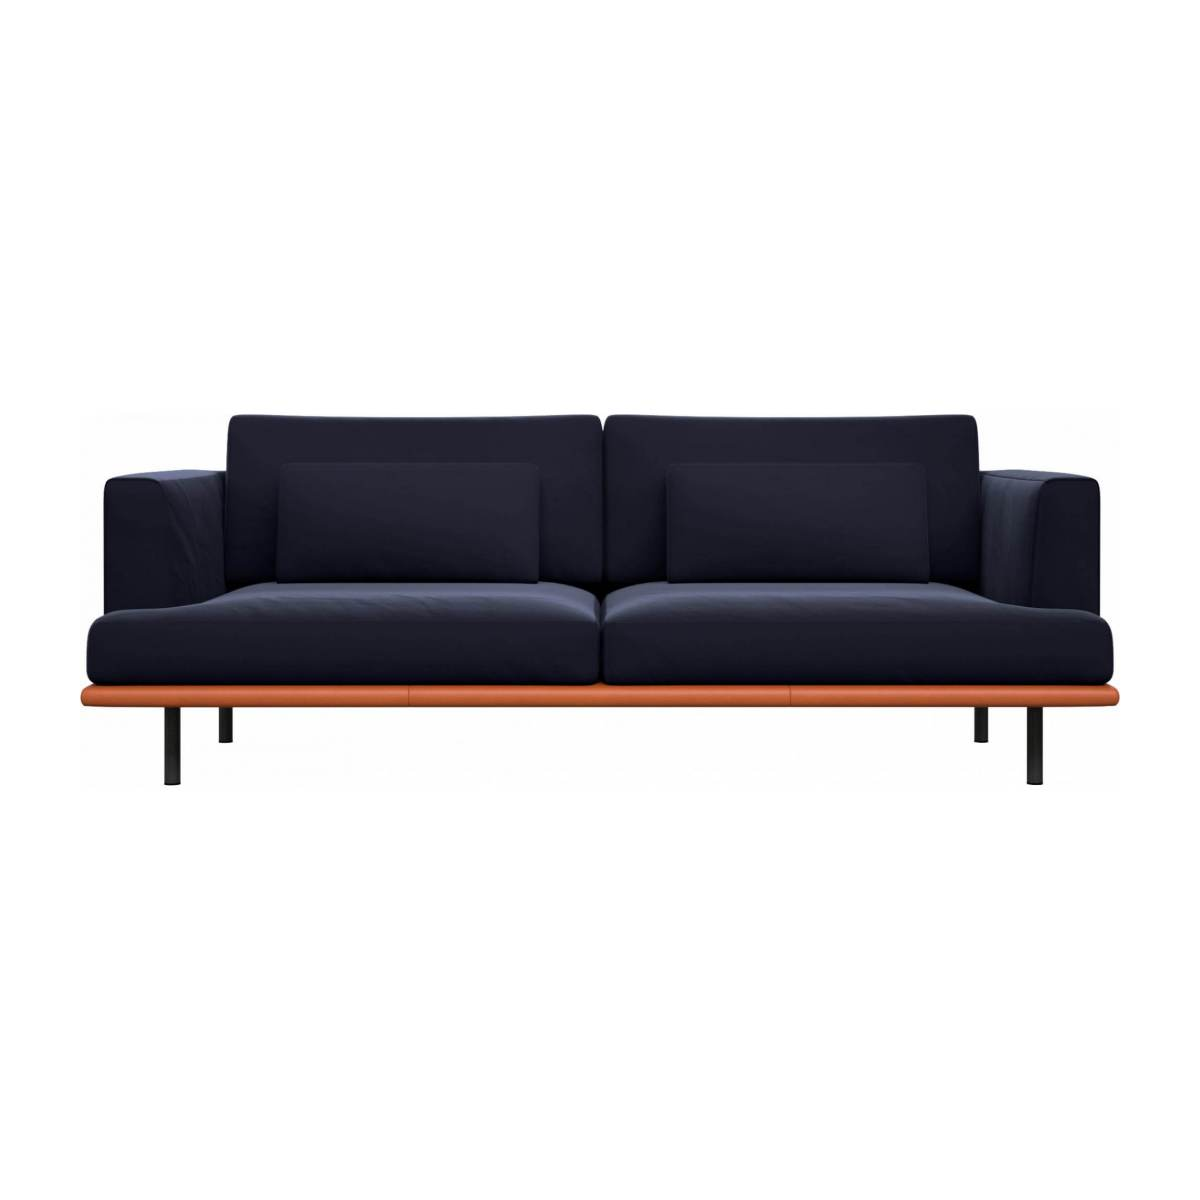 3 seater sofa in Super Velvet fabric, dark blue with base in brown leather n°1